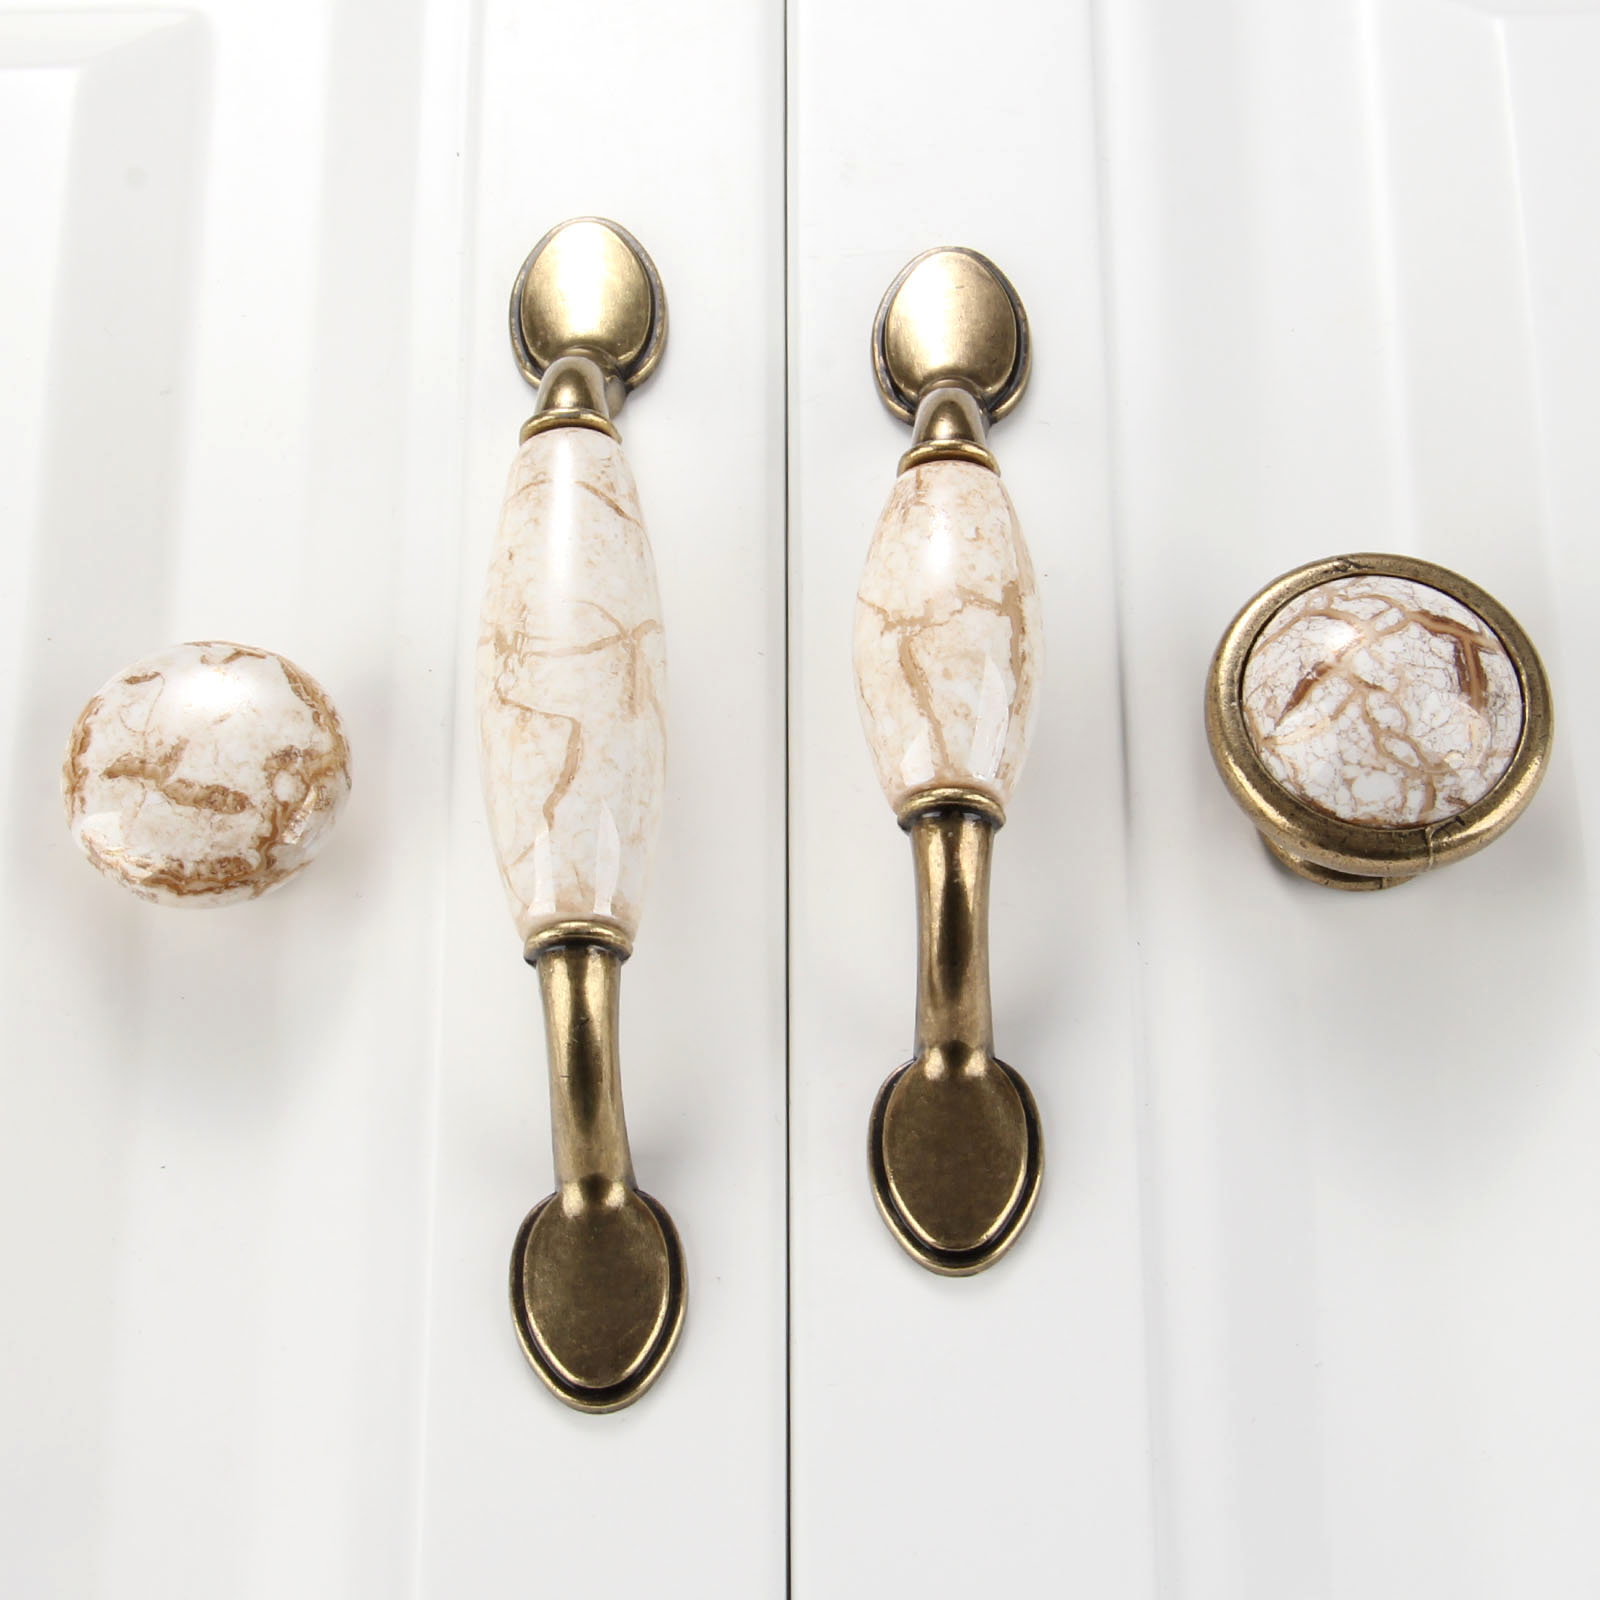 Antique Furniture Handle Ceramic Drawer Door Knob Closet Cupboard Pull Handle Cabinet Knobs and Handles Modern Kitchen Handle 1pc furniture handles wardrobe door pull drawer handle kitchen cupboard handle cabinet knobs and handles decorative dolphin knob